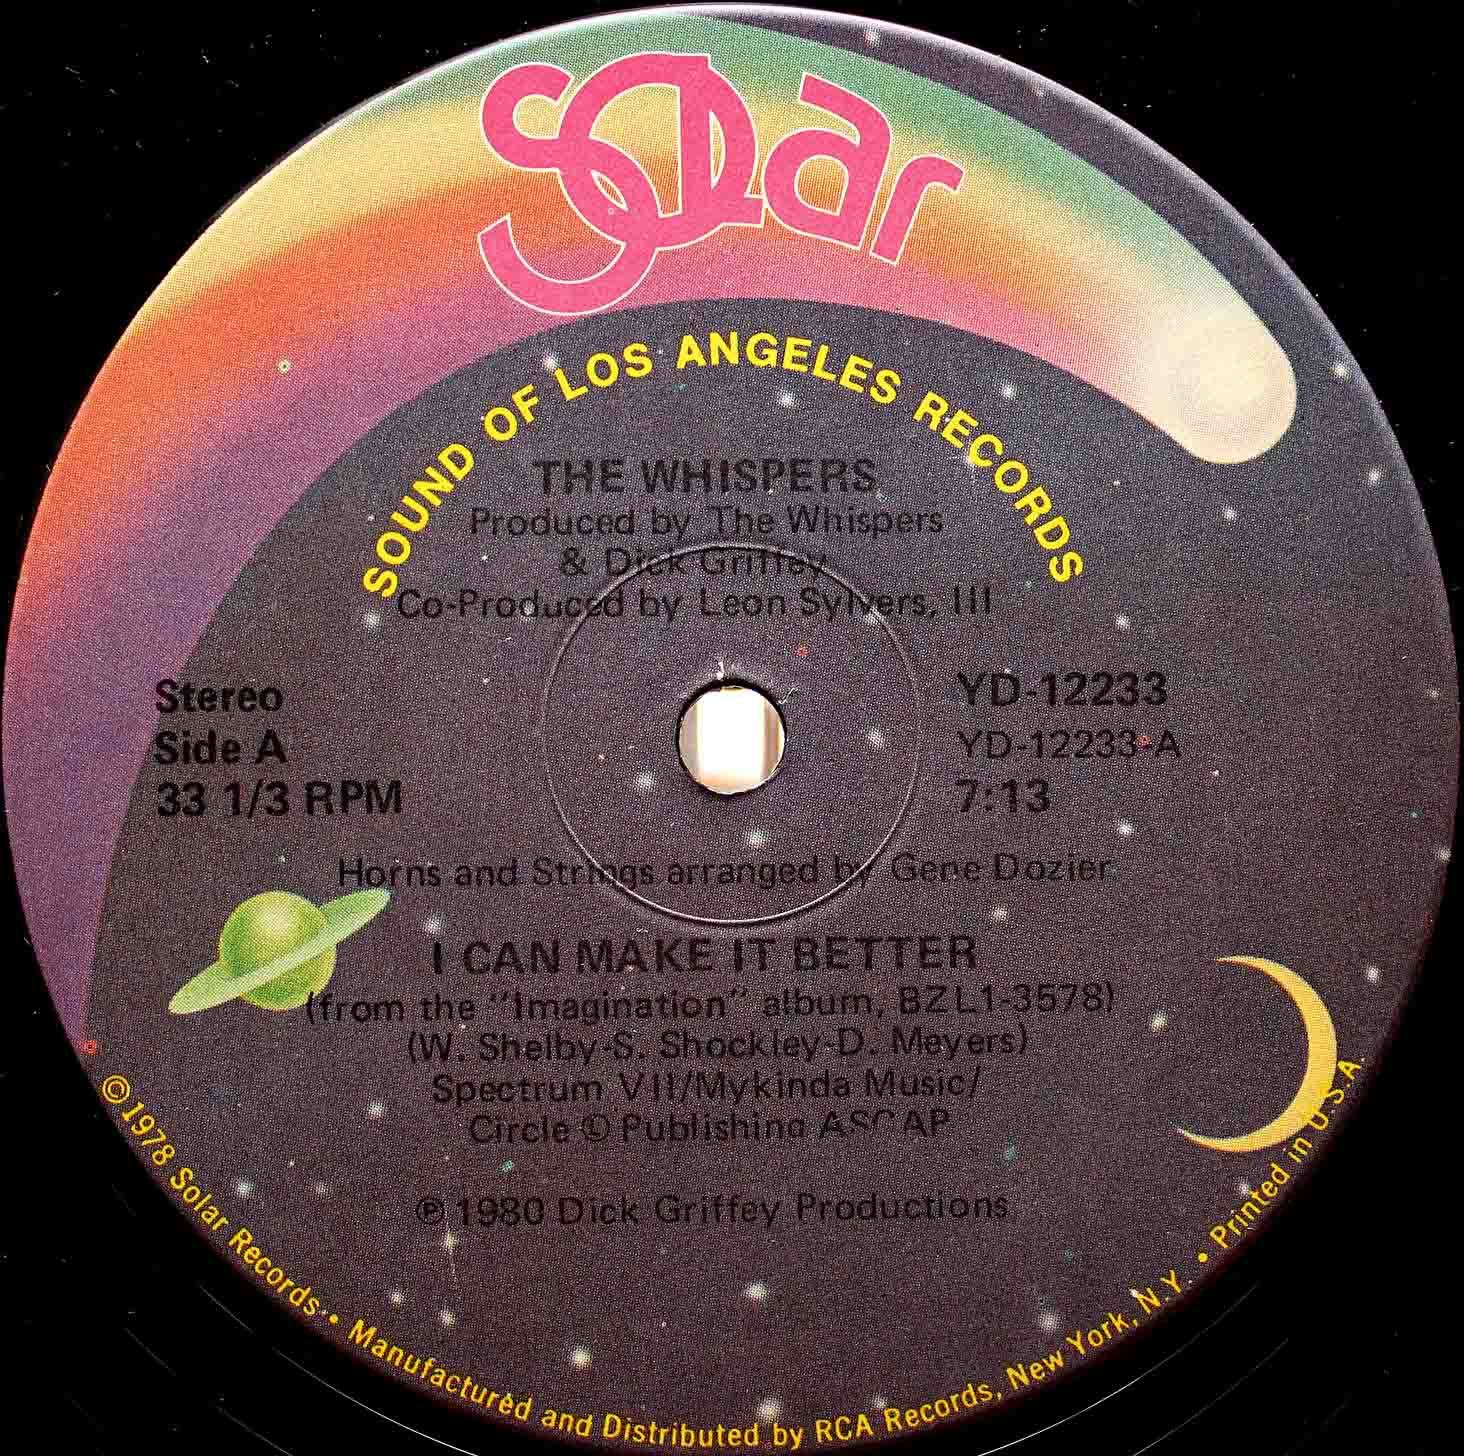 The Whispers make your better 02